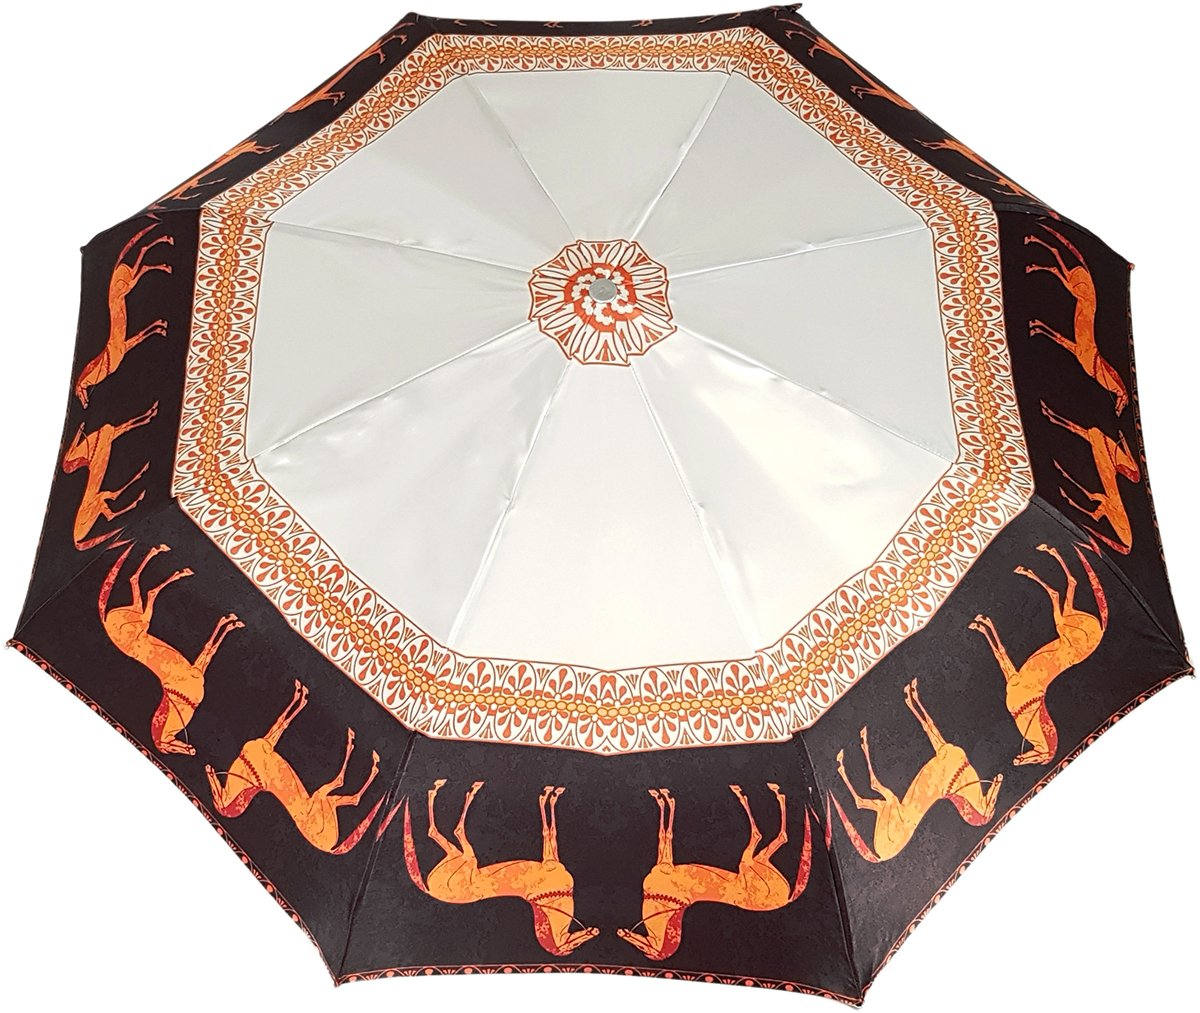 Lovely Woman's Folding Umbrella With New Horses Design - il-marchesato